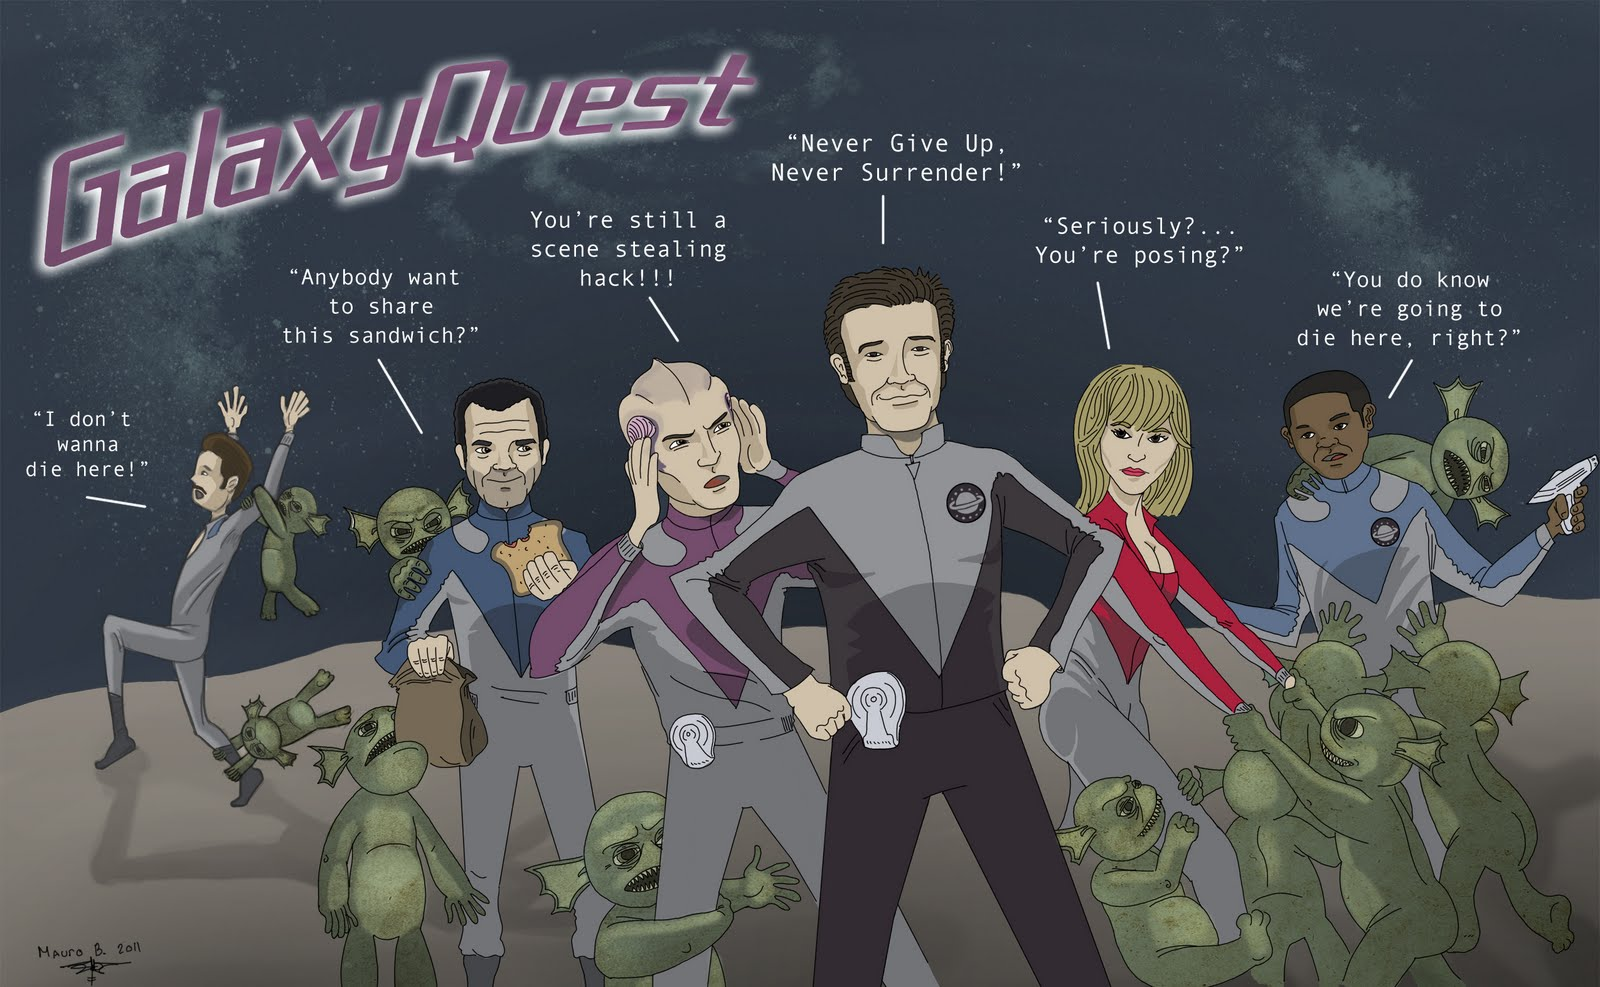 Galaxy Quest - Never giver up, never surrender!